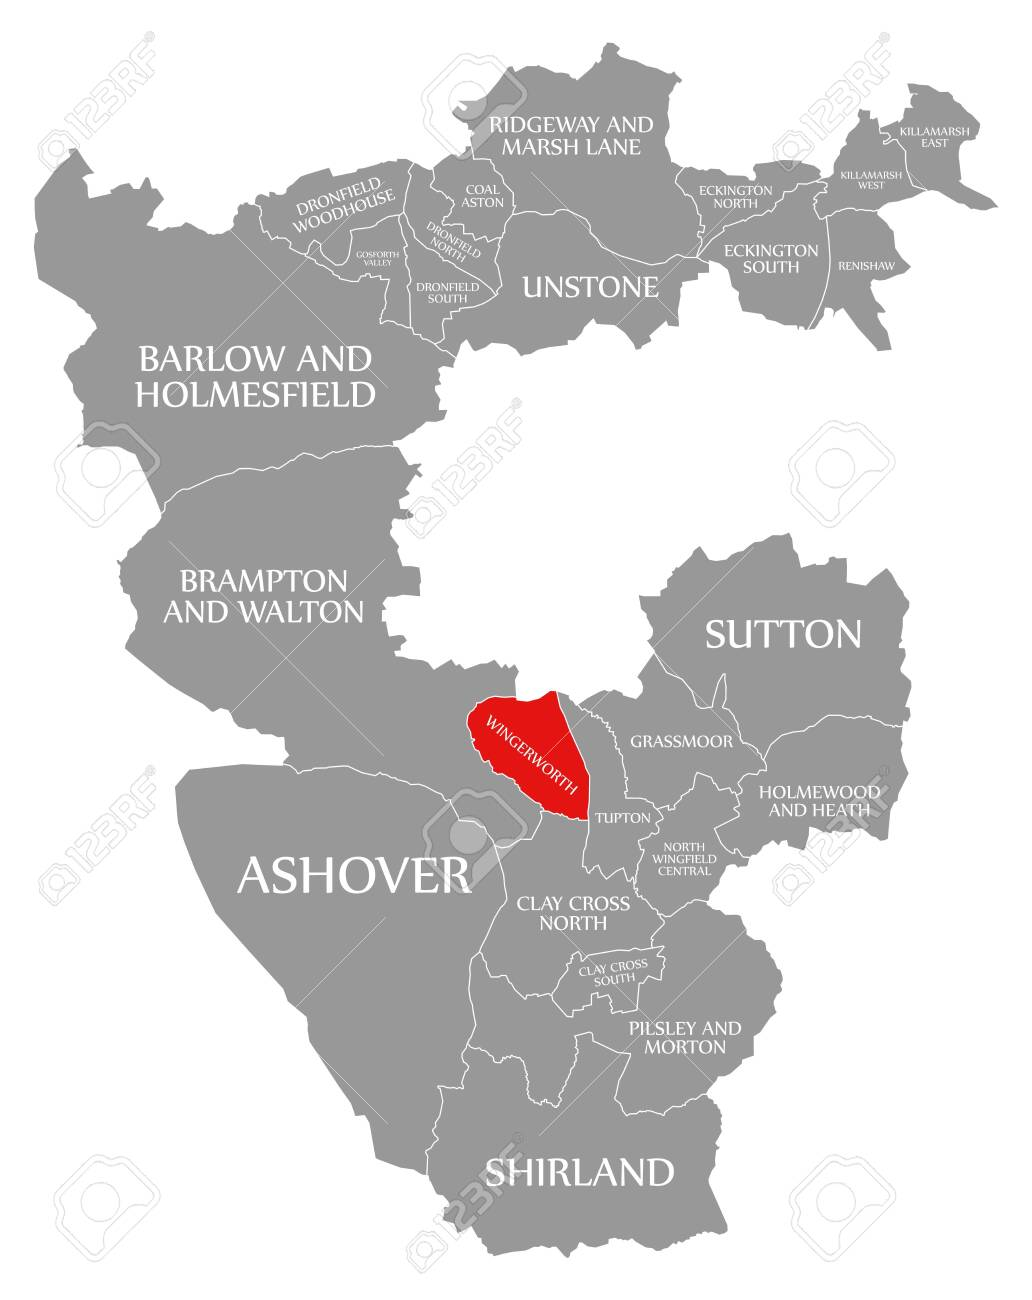 Map Of North Of England Uk.Wingerworth Red Highlighted In Map Of North East Derbyshire District